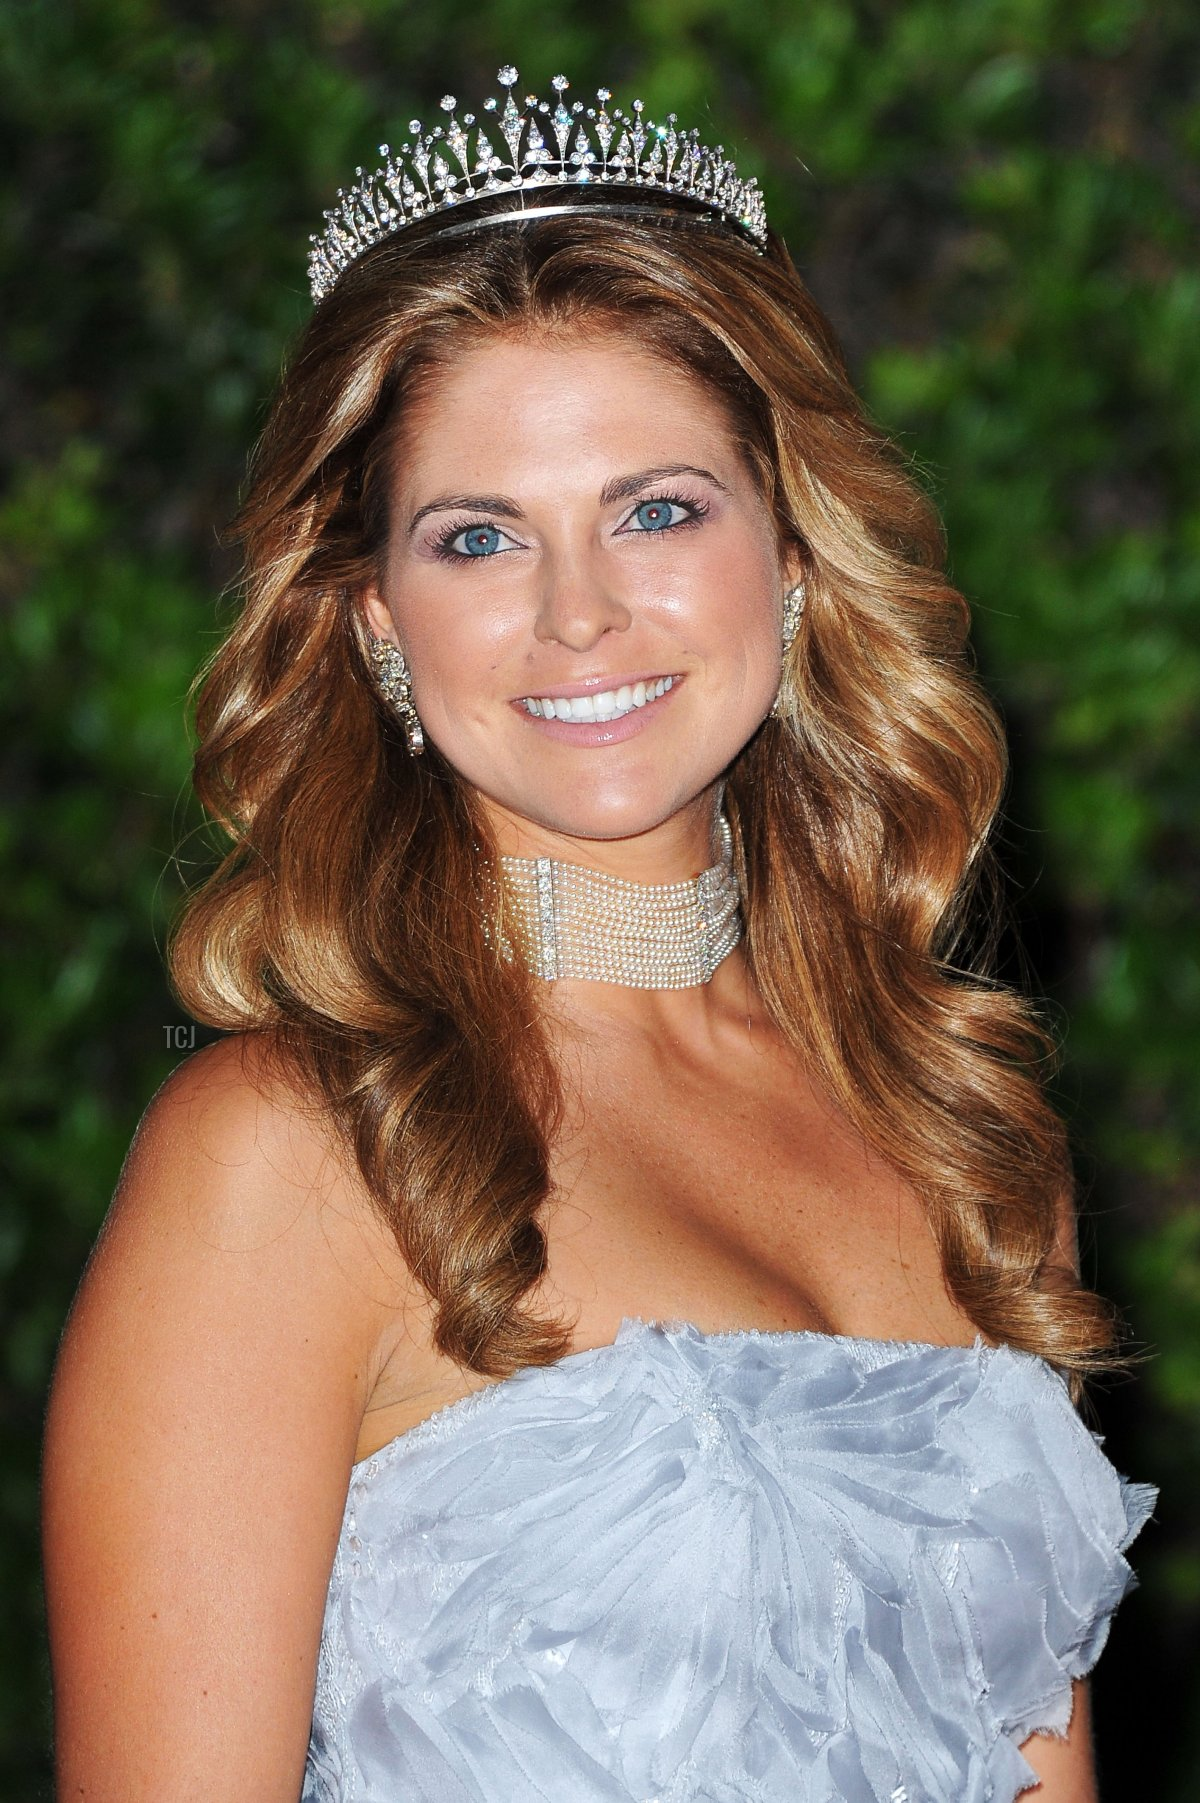 Princess Madeleine of Sweden attends a dinner at Opera terraces after the religious wedding ceremony of Prince Albert II of Monaco and Princess Charlene of Monaco on July 2, 2011 in Monaco